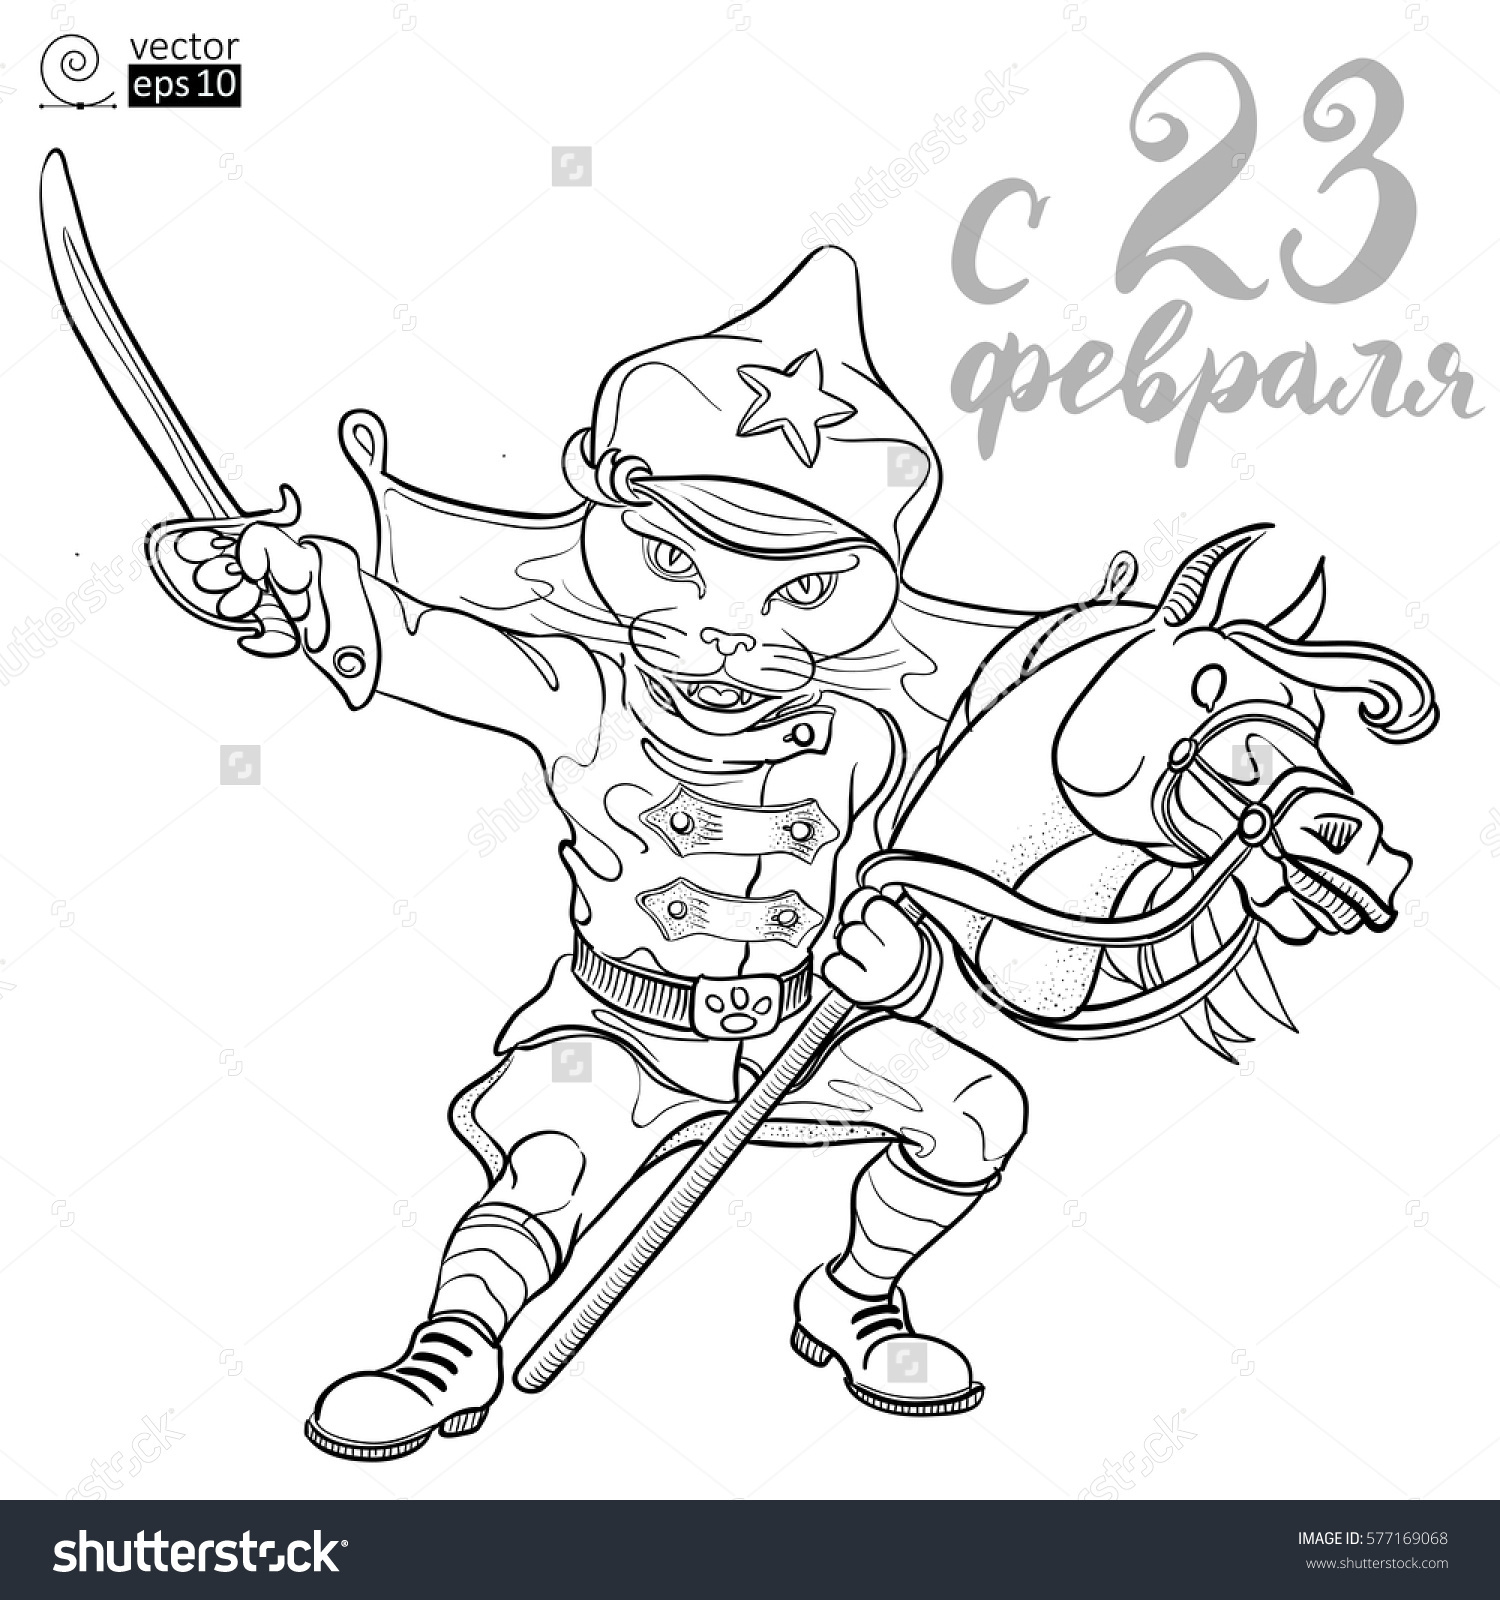 Bear Cavalry coloring #6, Download drawings